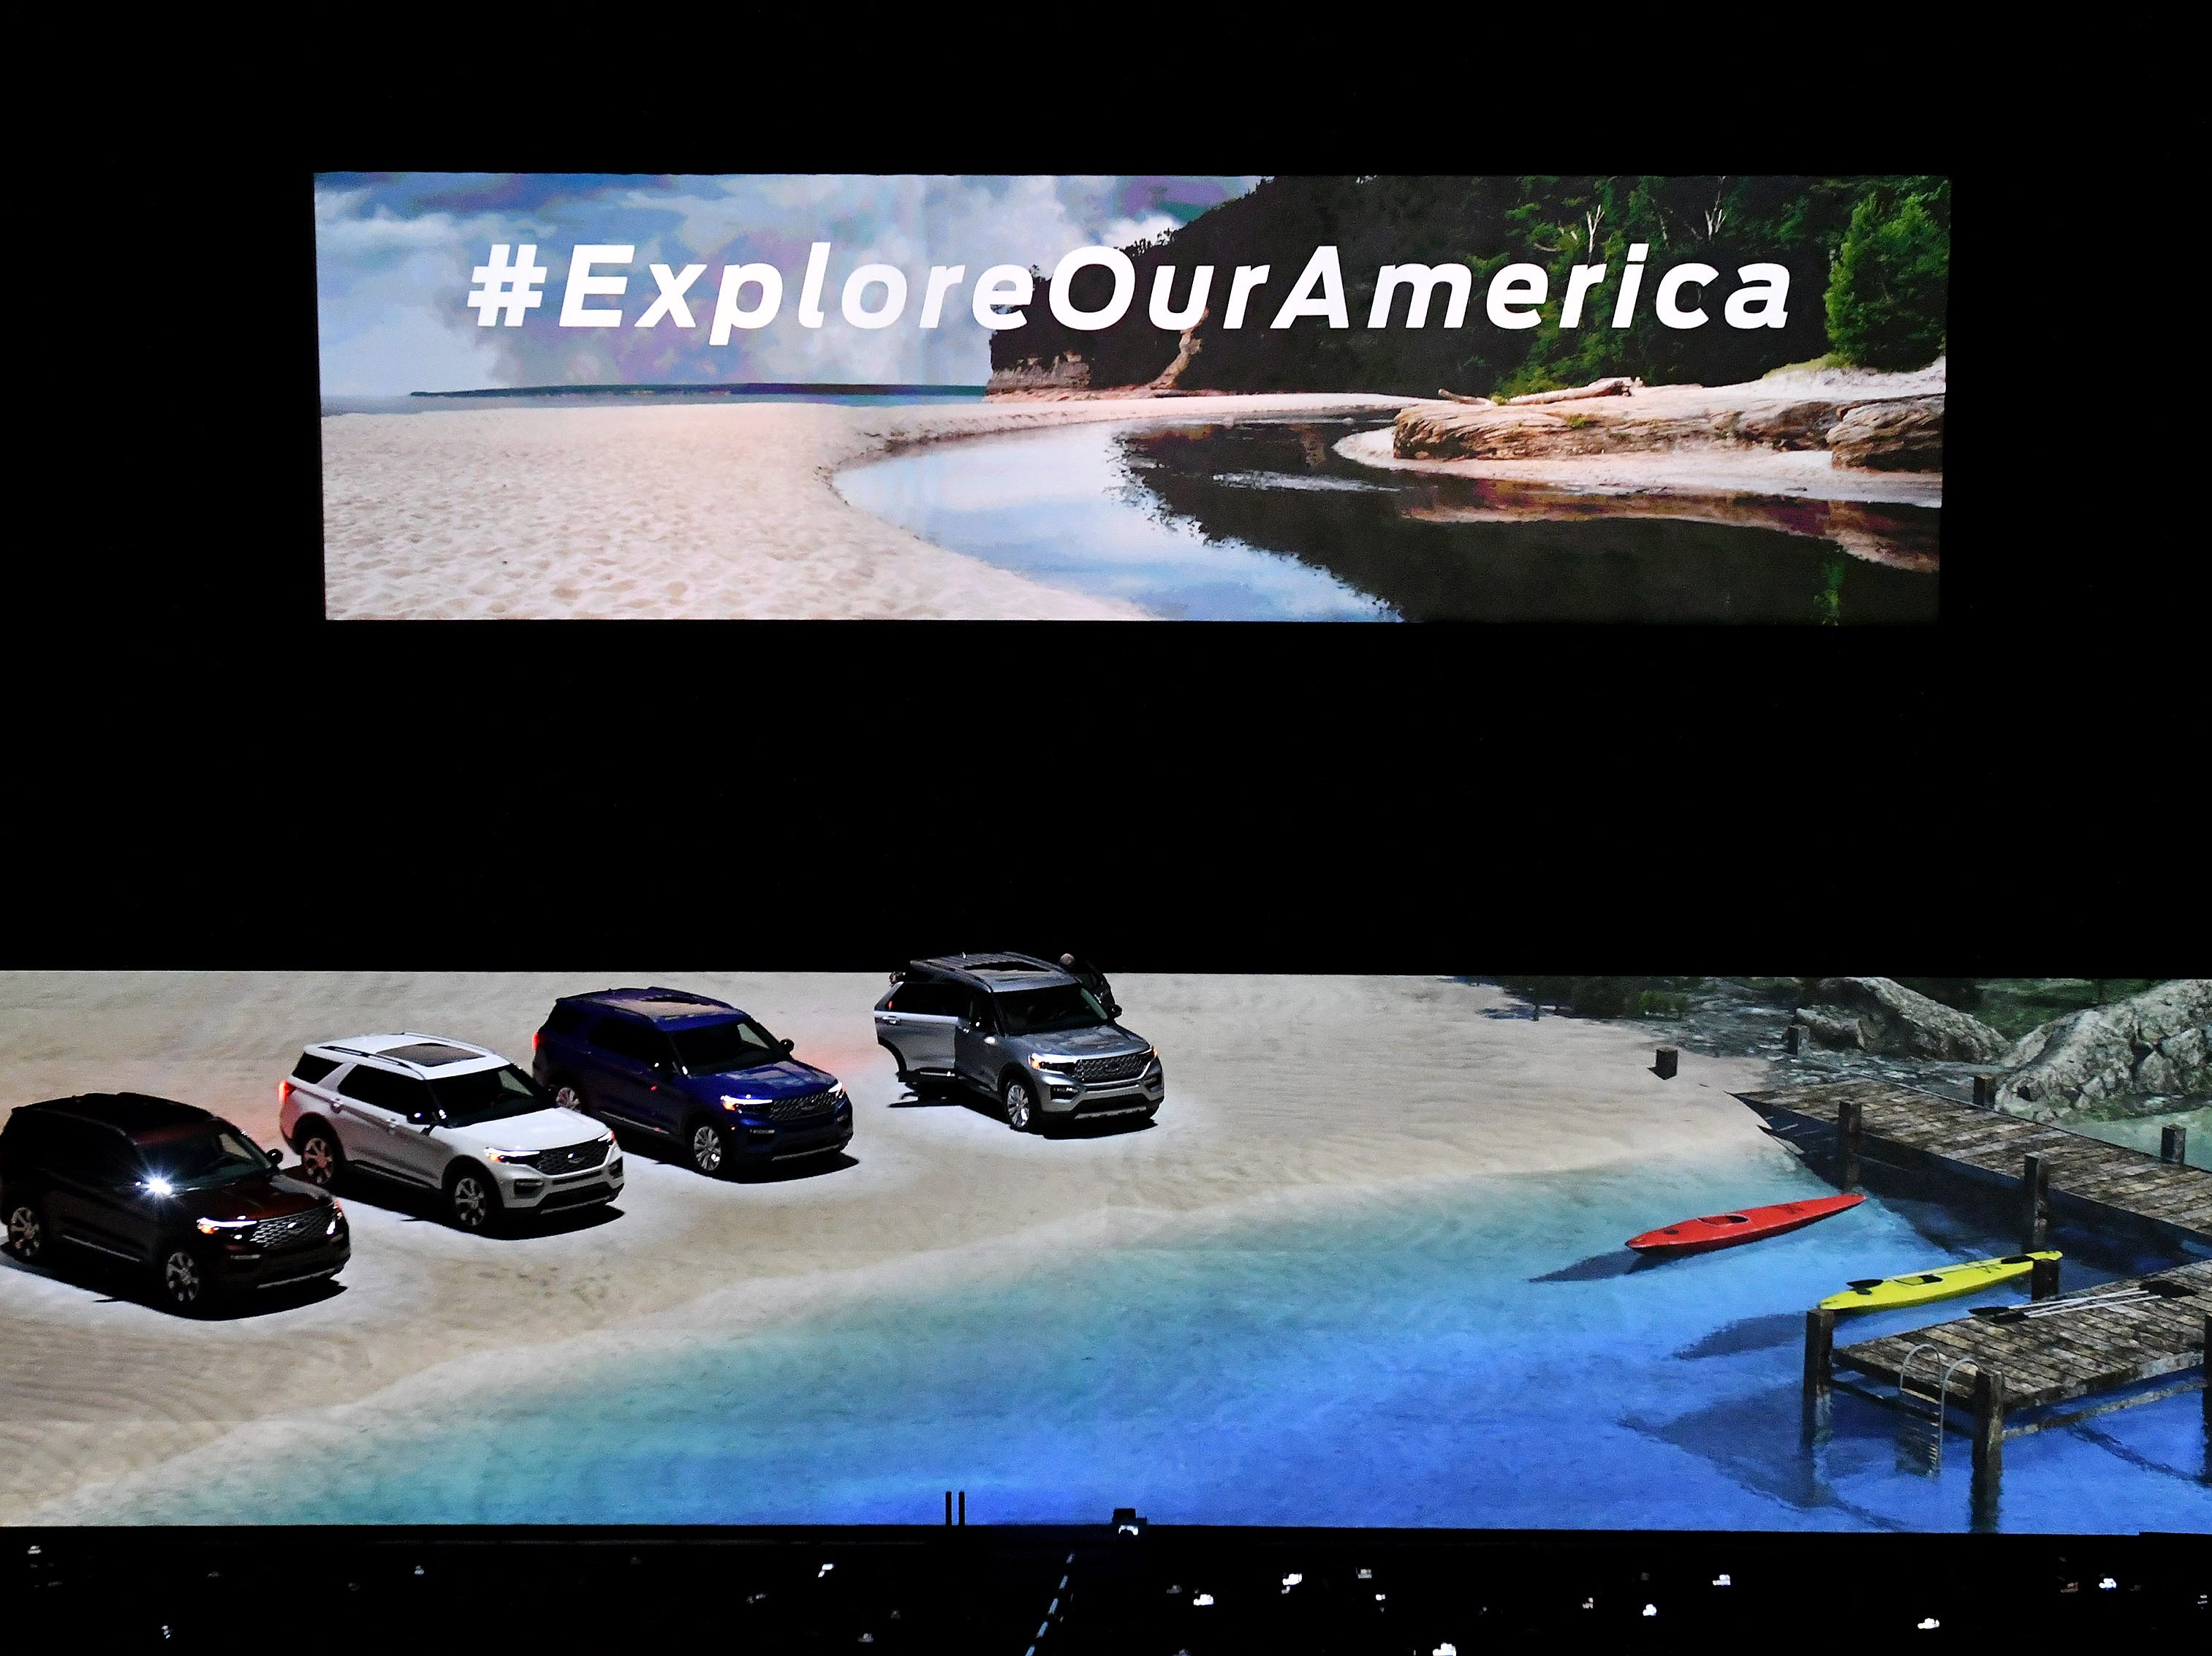 2020 Ford Explorers appears to be driving on a beach due to video effects projected on the floor of Ford Field.